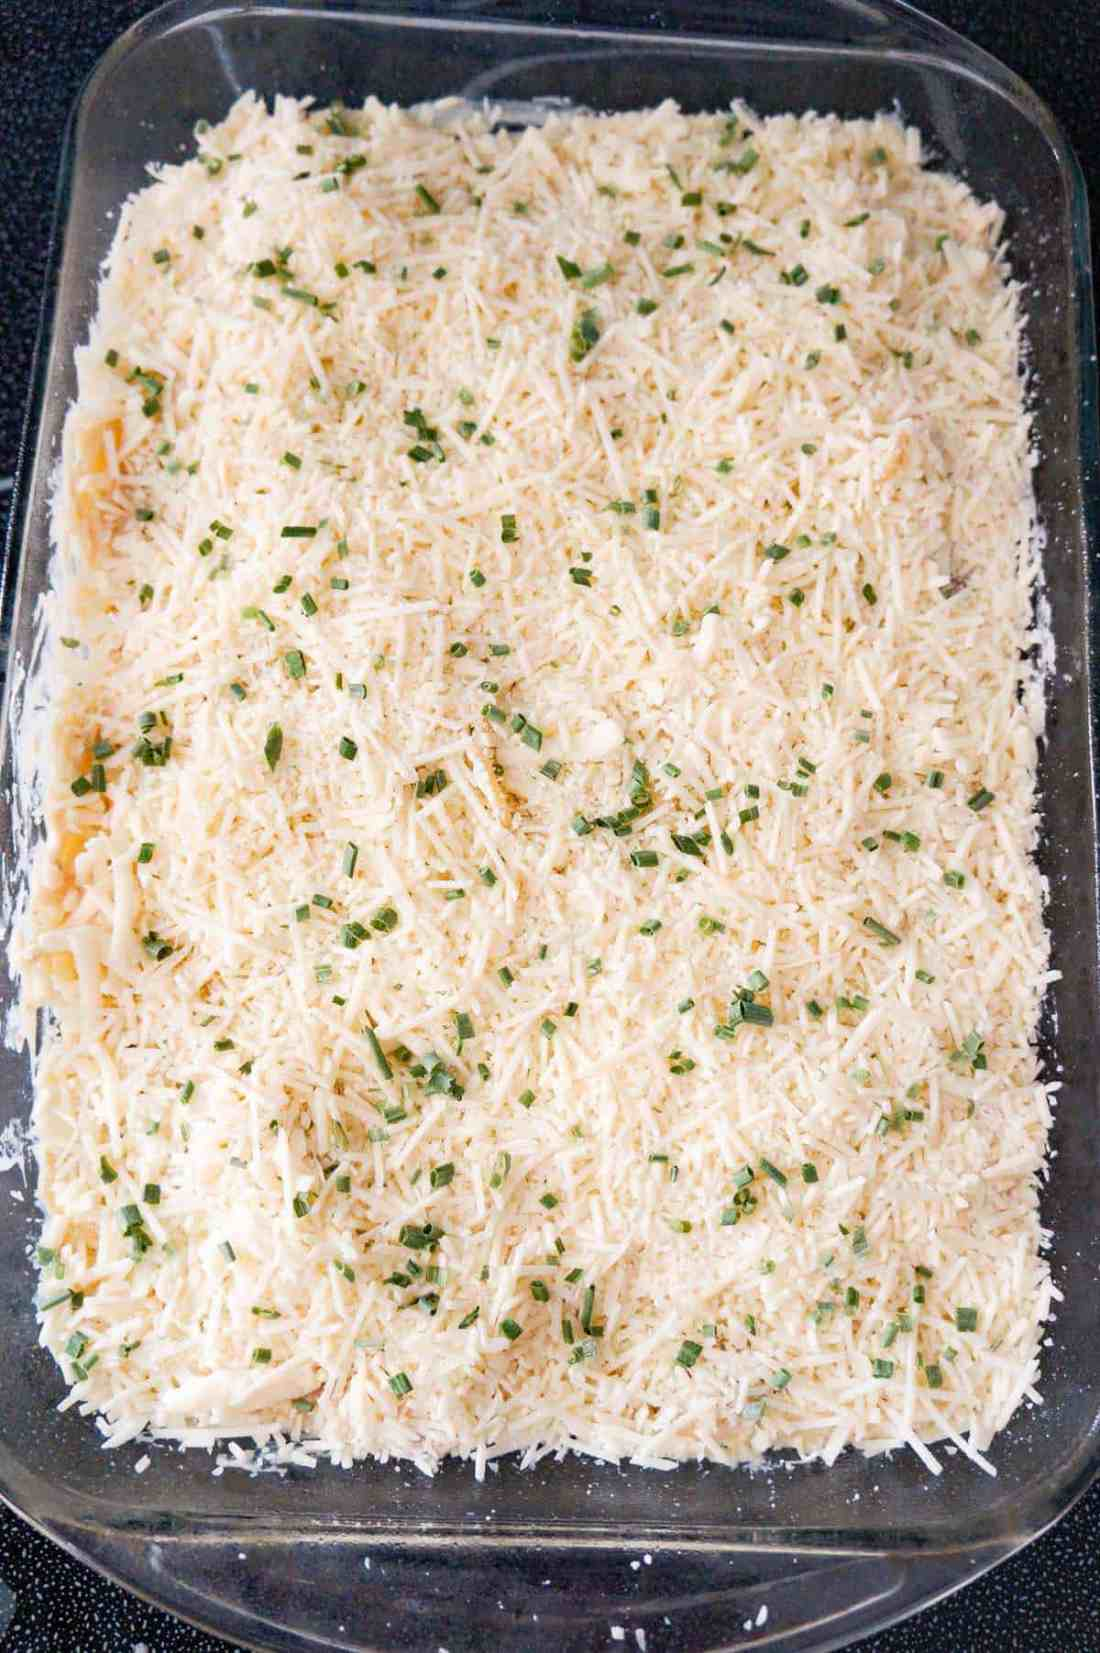 shredded mozzarella, Parmesan and chopped chives on top of turkey tetrazzini before baking